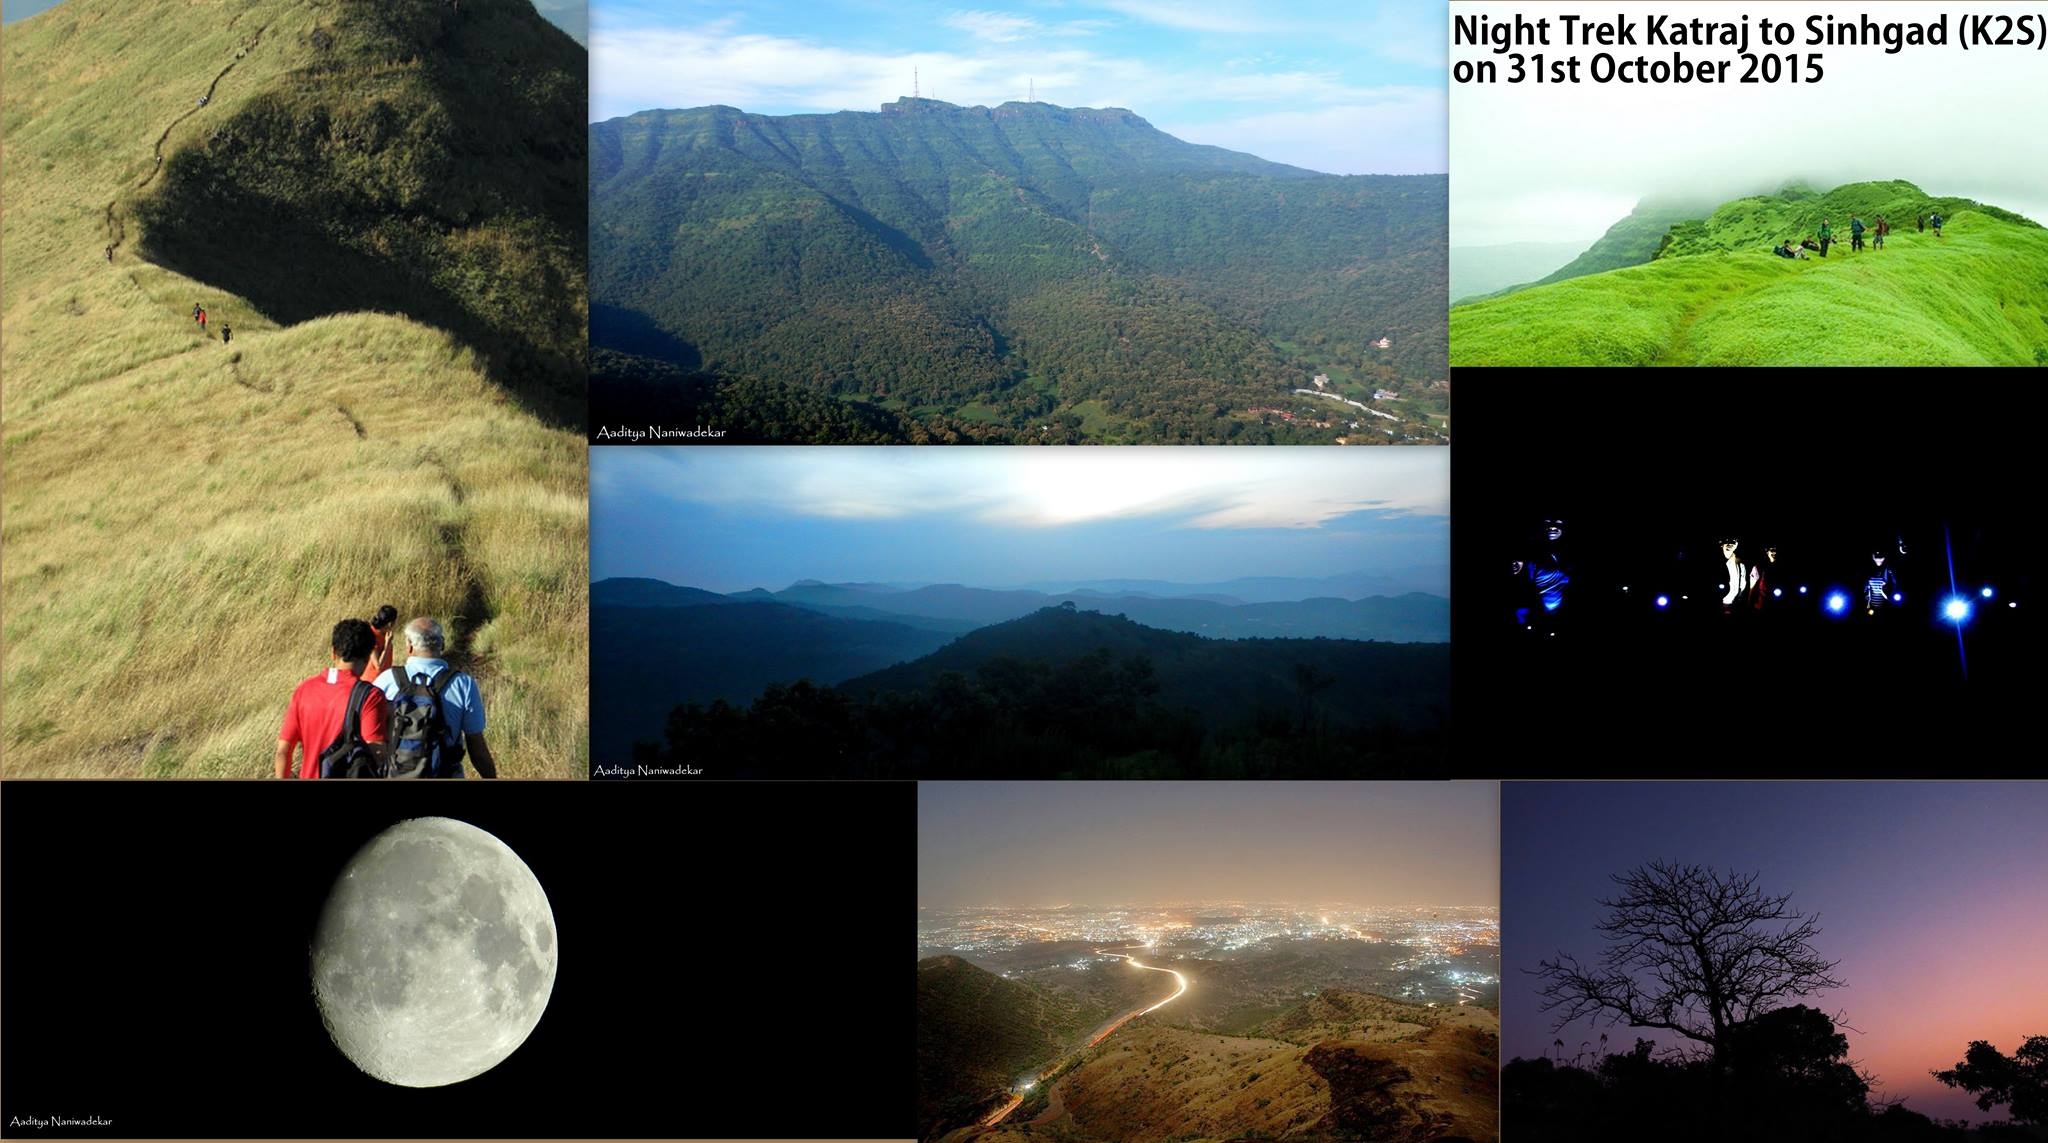 Night Trek @Katraj to Sinhgad (K2S)